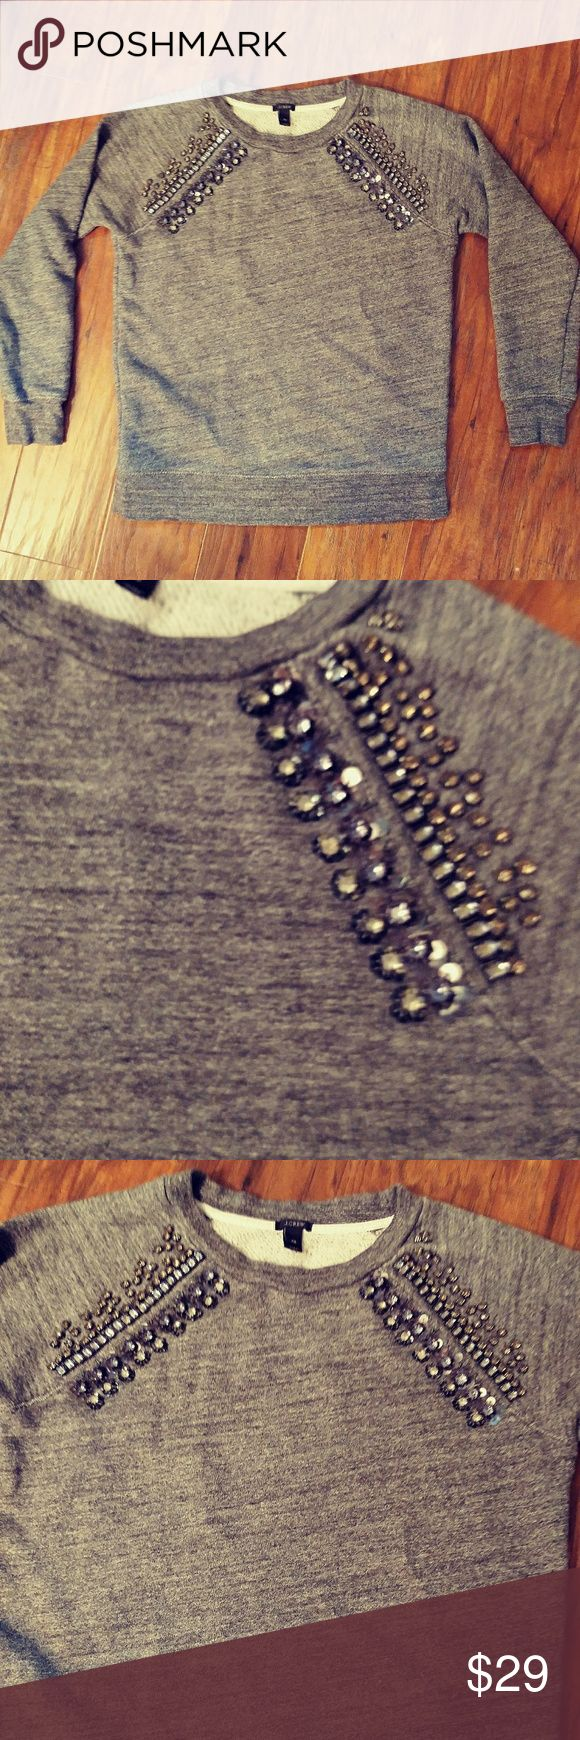 💠JCREW STONE STUDDED SWEATSHIRT 💠 Excellent condition, all studs are sewn on... reference I'm 5'6 135 lbs... Feel free to ask any questions J. Crew Tops Sweatshirts & Hoodies